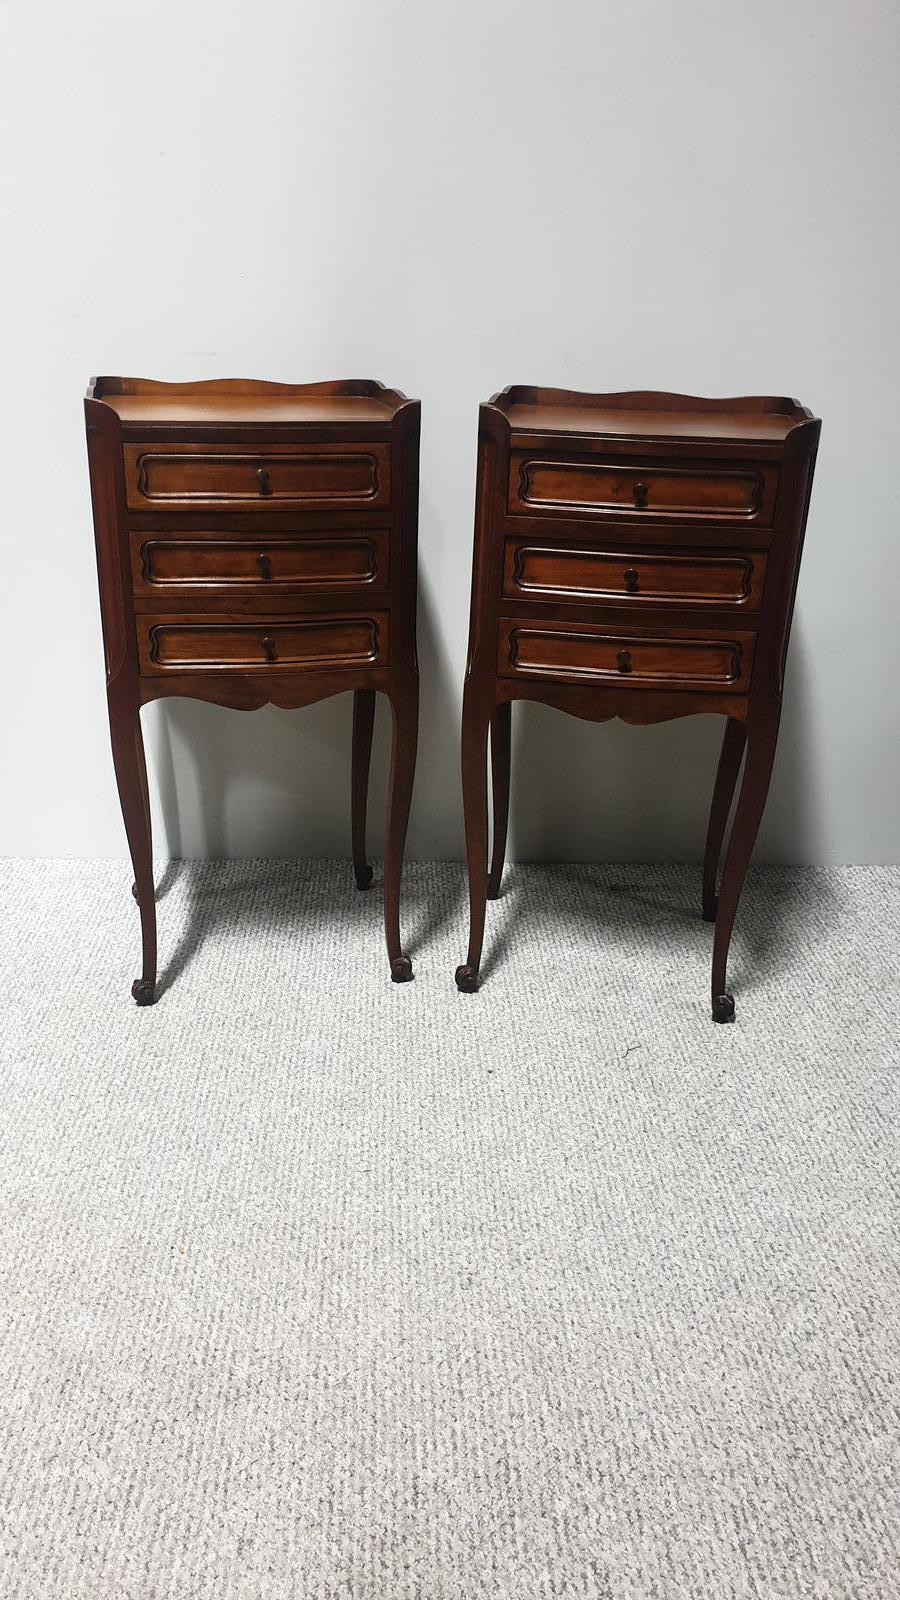 Pair of French Mahogany Bedside Chests of Drawers (1 of 1)